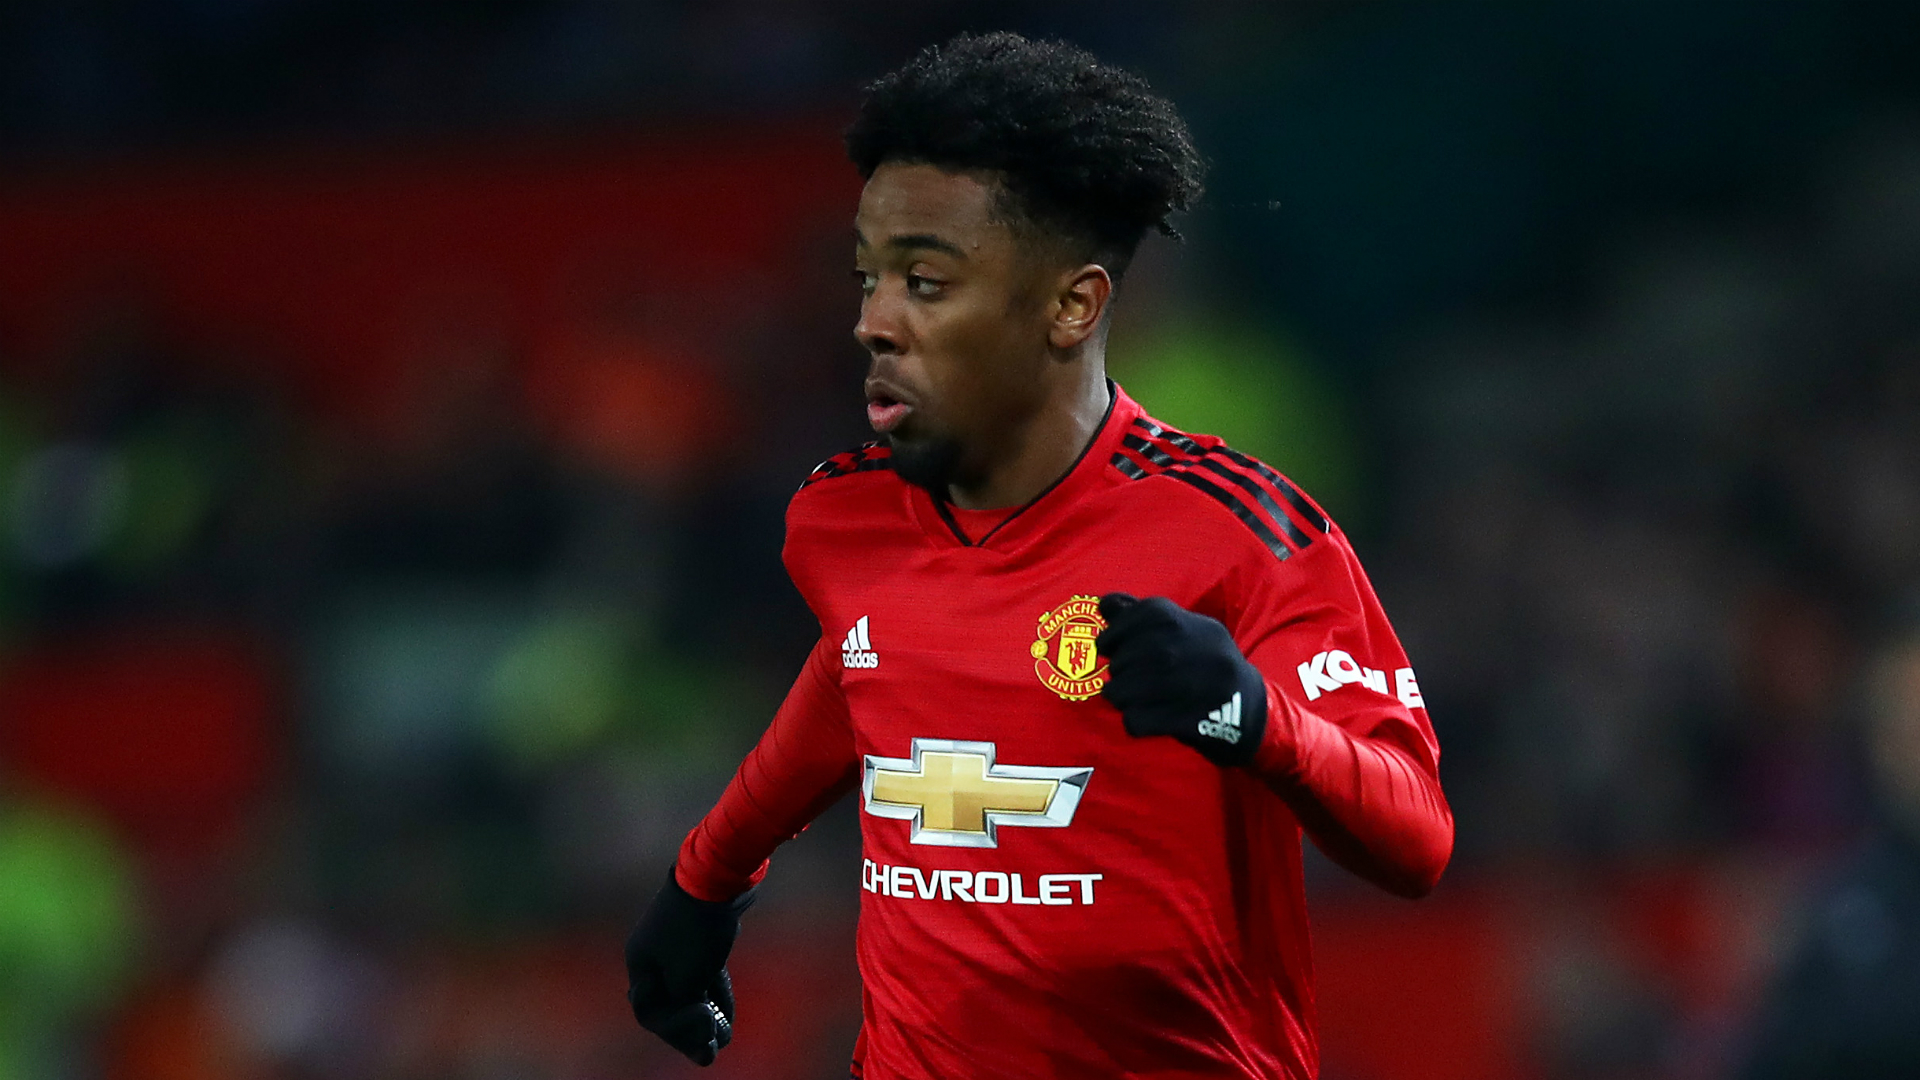 Chelsea believes they will get angel gomes for free - Bóng Đá